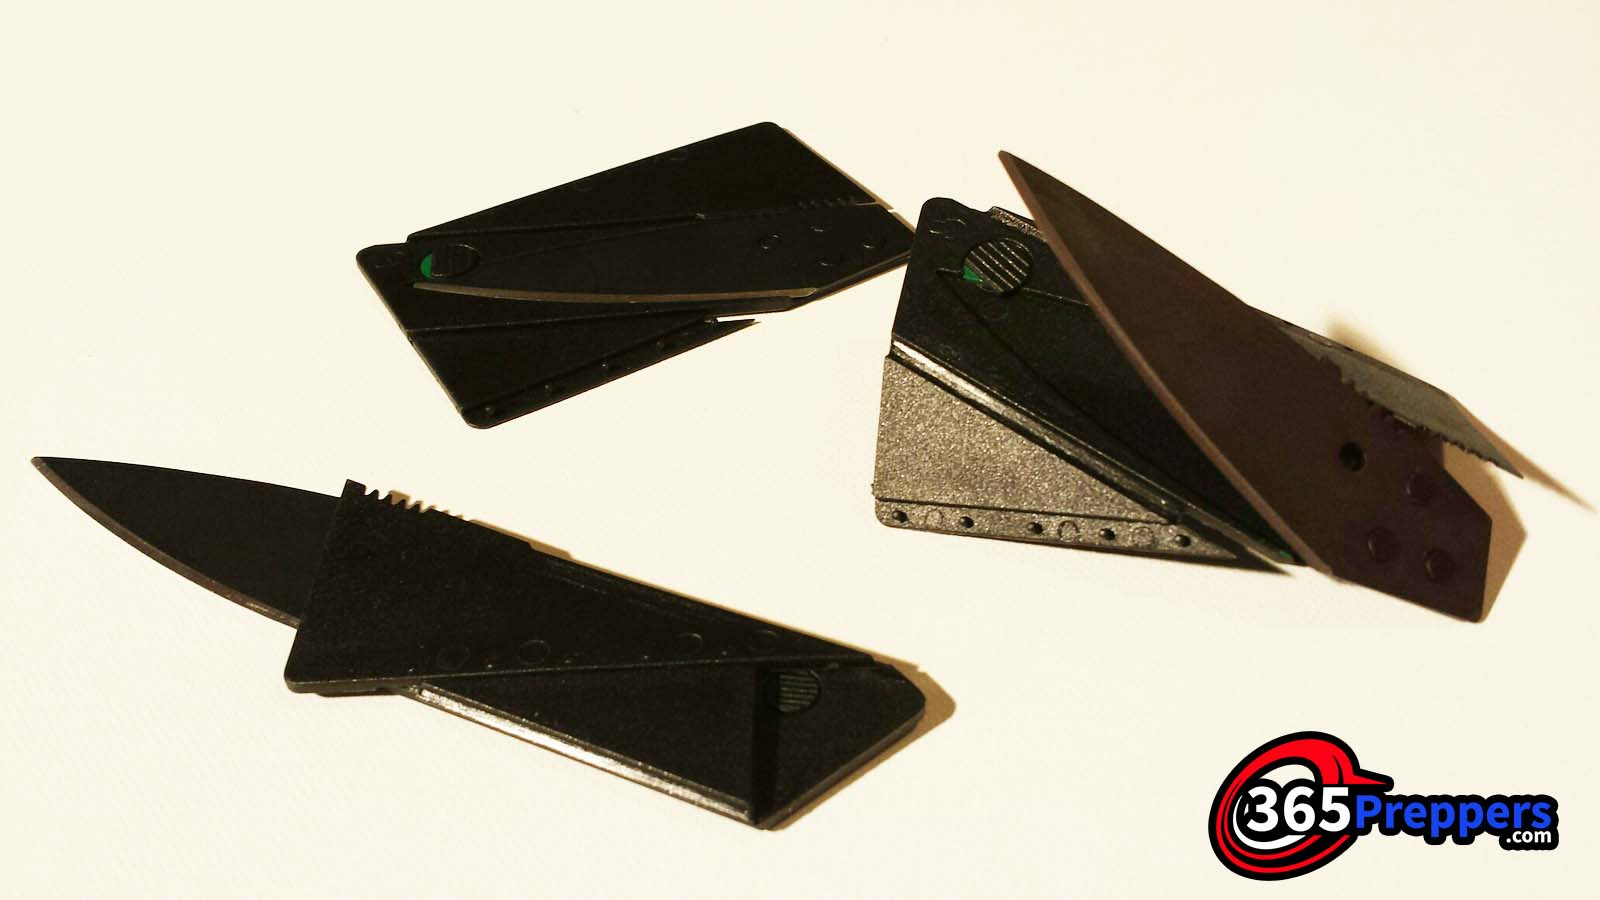 Business Card Survival Knife now on sale!